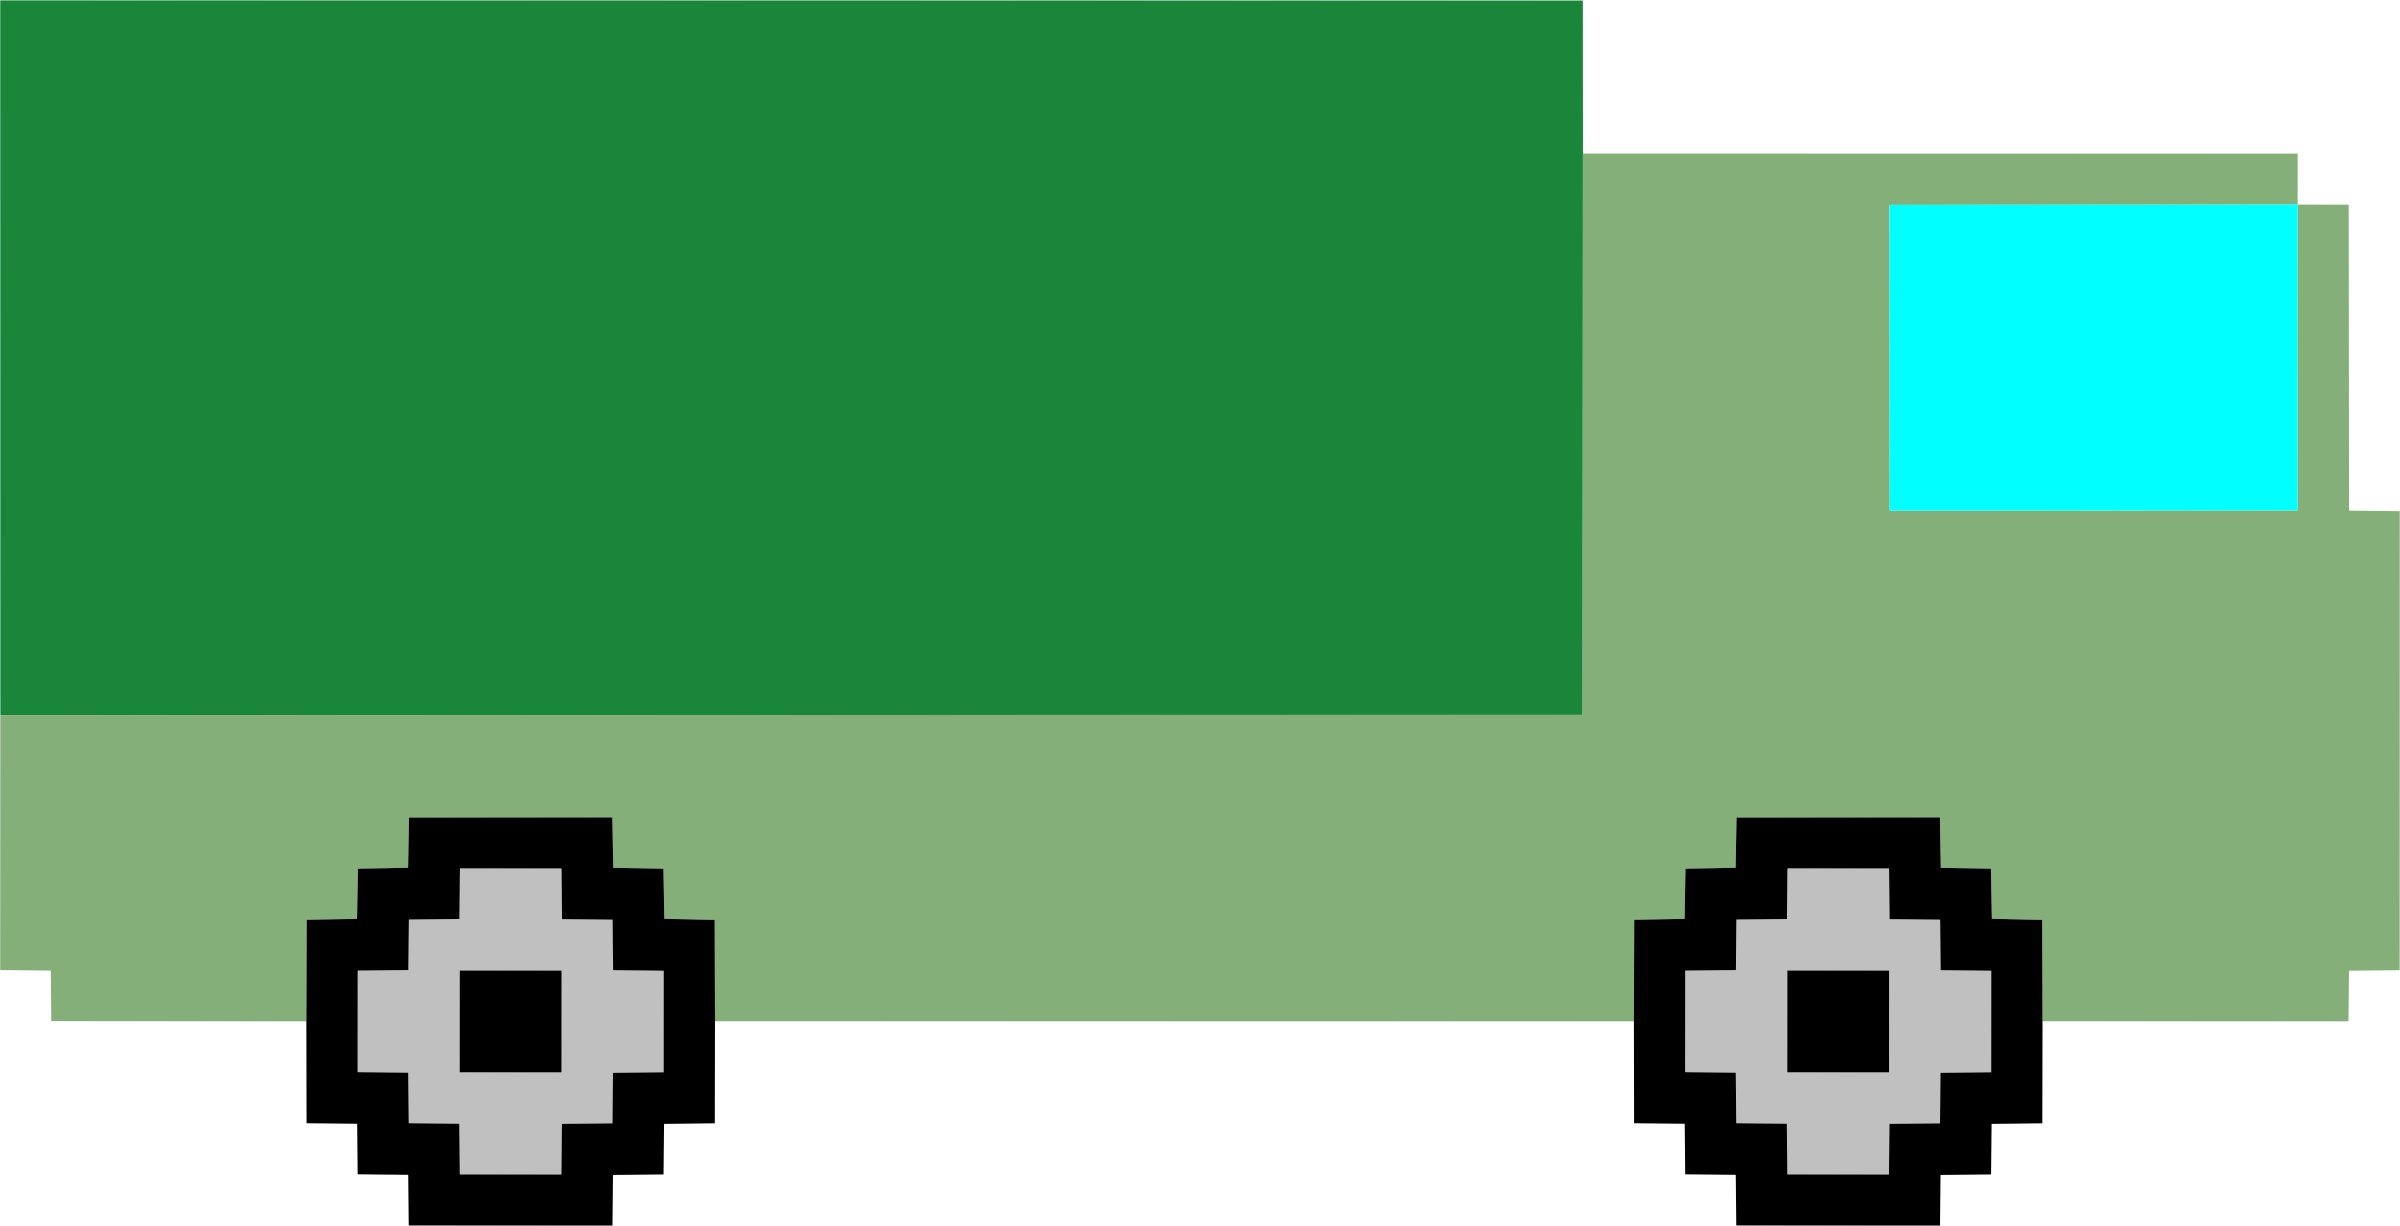 Pixel art truck by Firkin